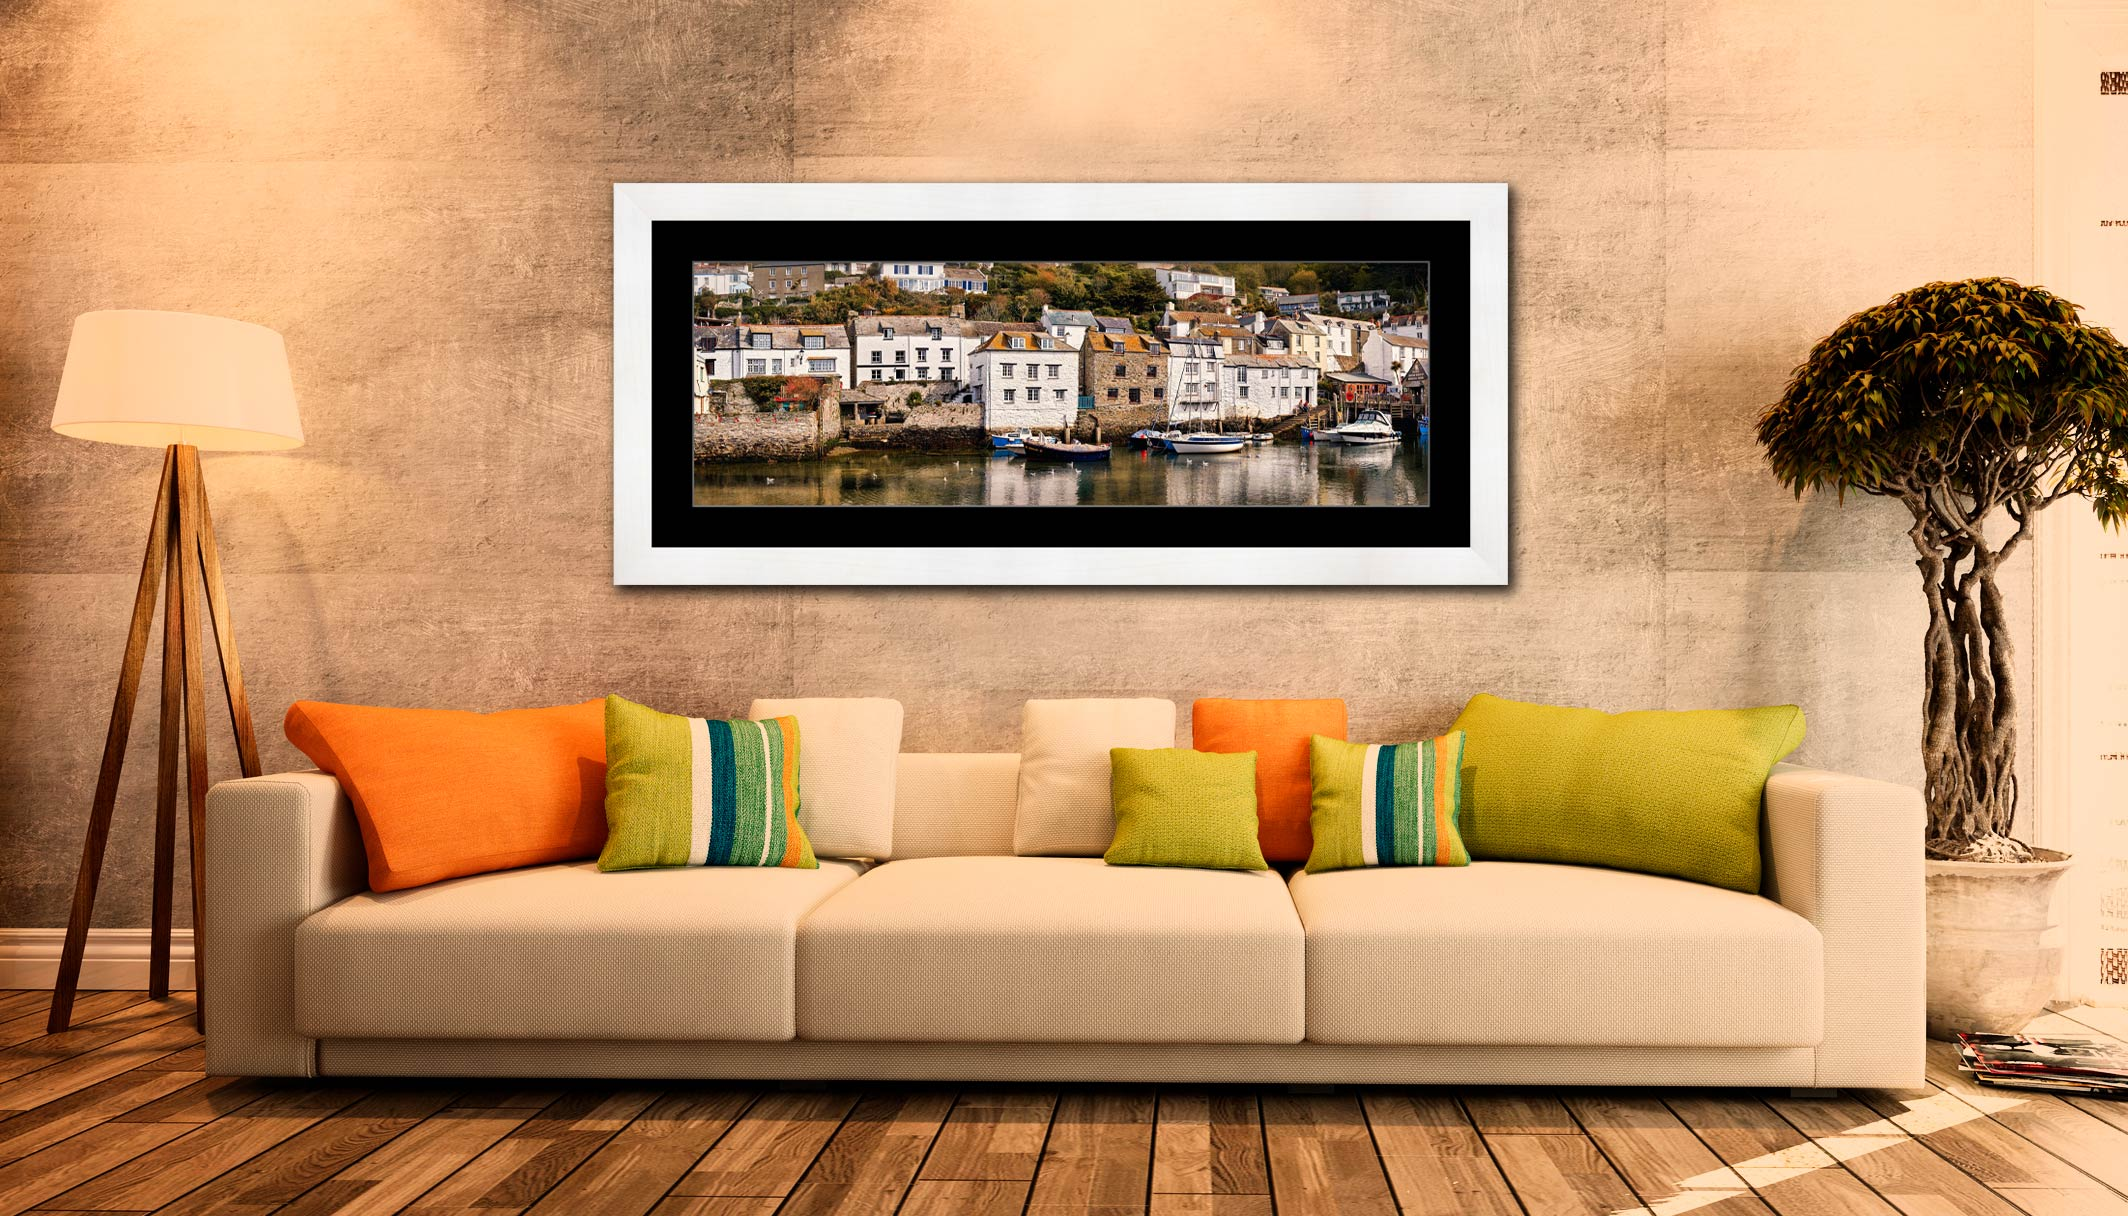 Harbour Cottages Polperro - Framed Print with Mount on Wall